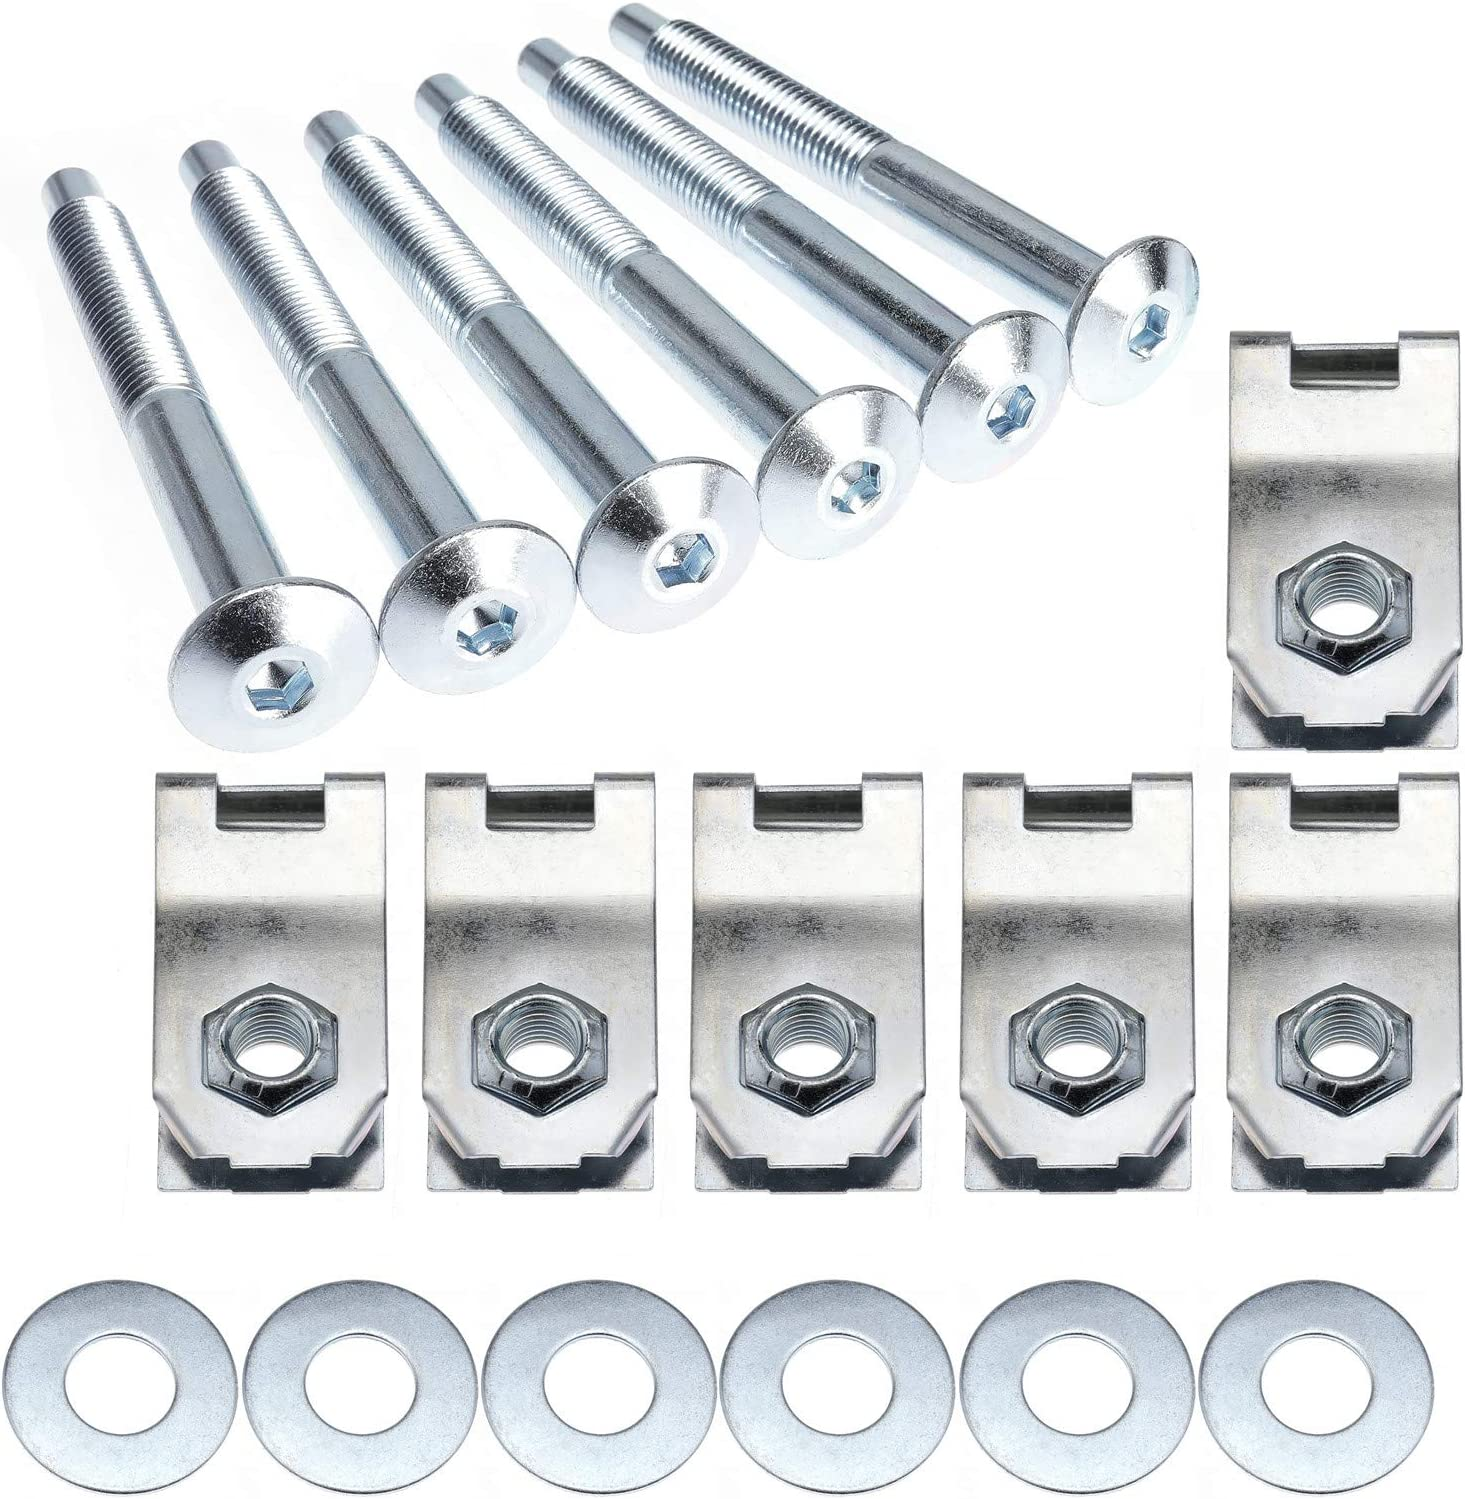 YRANZO Bed Mounting Bolt Nut Hardware Kit for 1997-2012 Ford F150 F250 Lobo 2006-2008 Lincoln Mark LT Replaces Dorman 924-313 W708605S436 W709424S901 Set of 6 Bolts Washers Captured Nuts